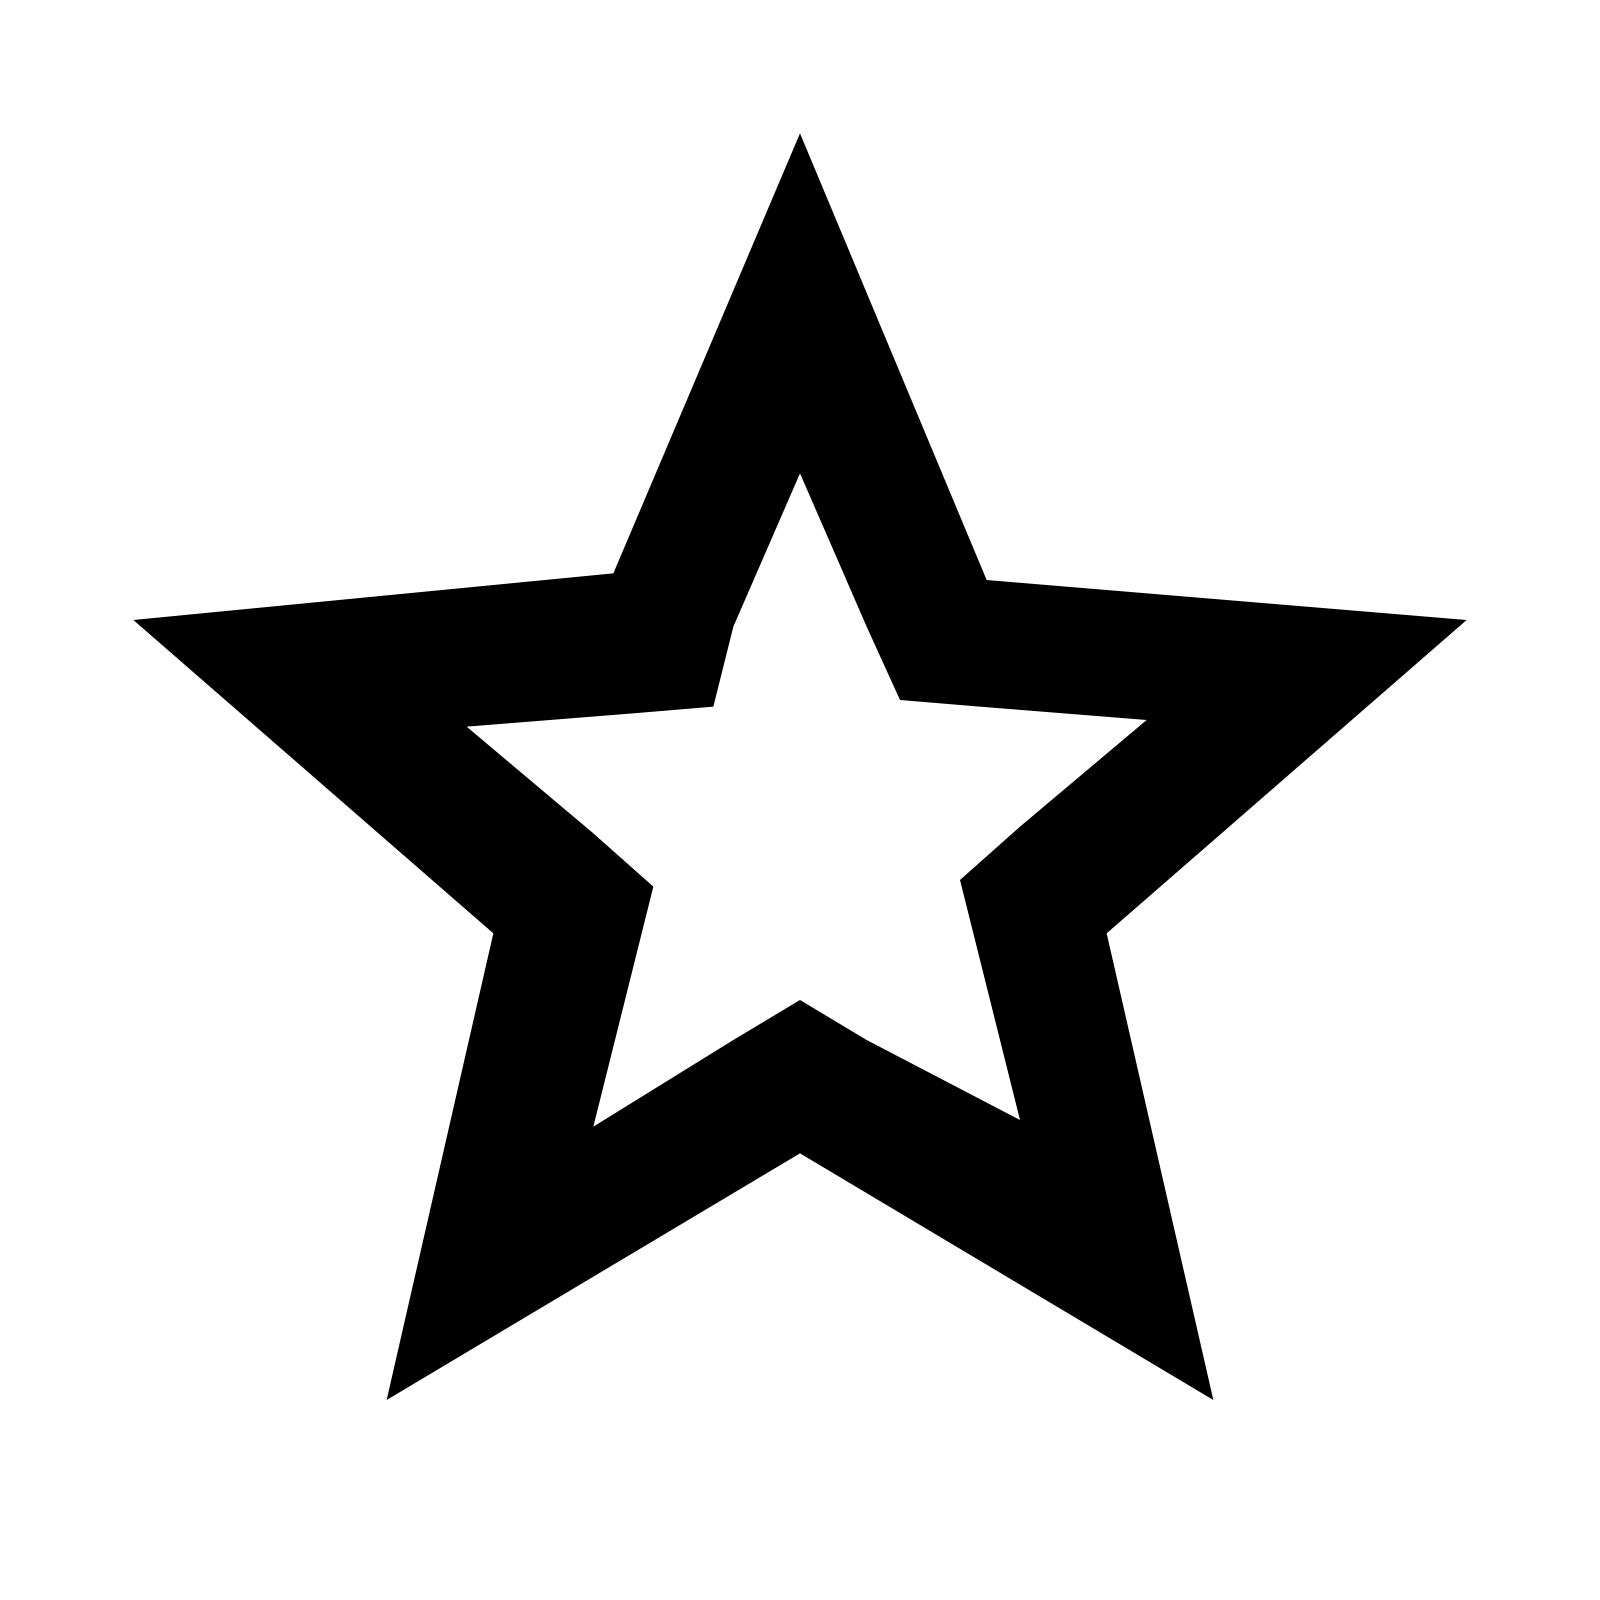 Clipart black star black and white Black Star PNG Image - PurePNG | Free transparent CC0 PNG Image Library black and white